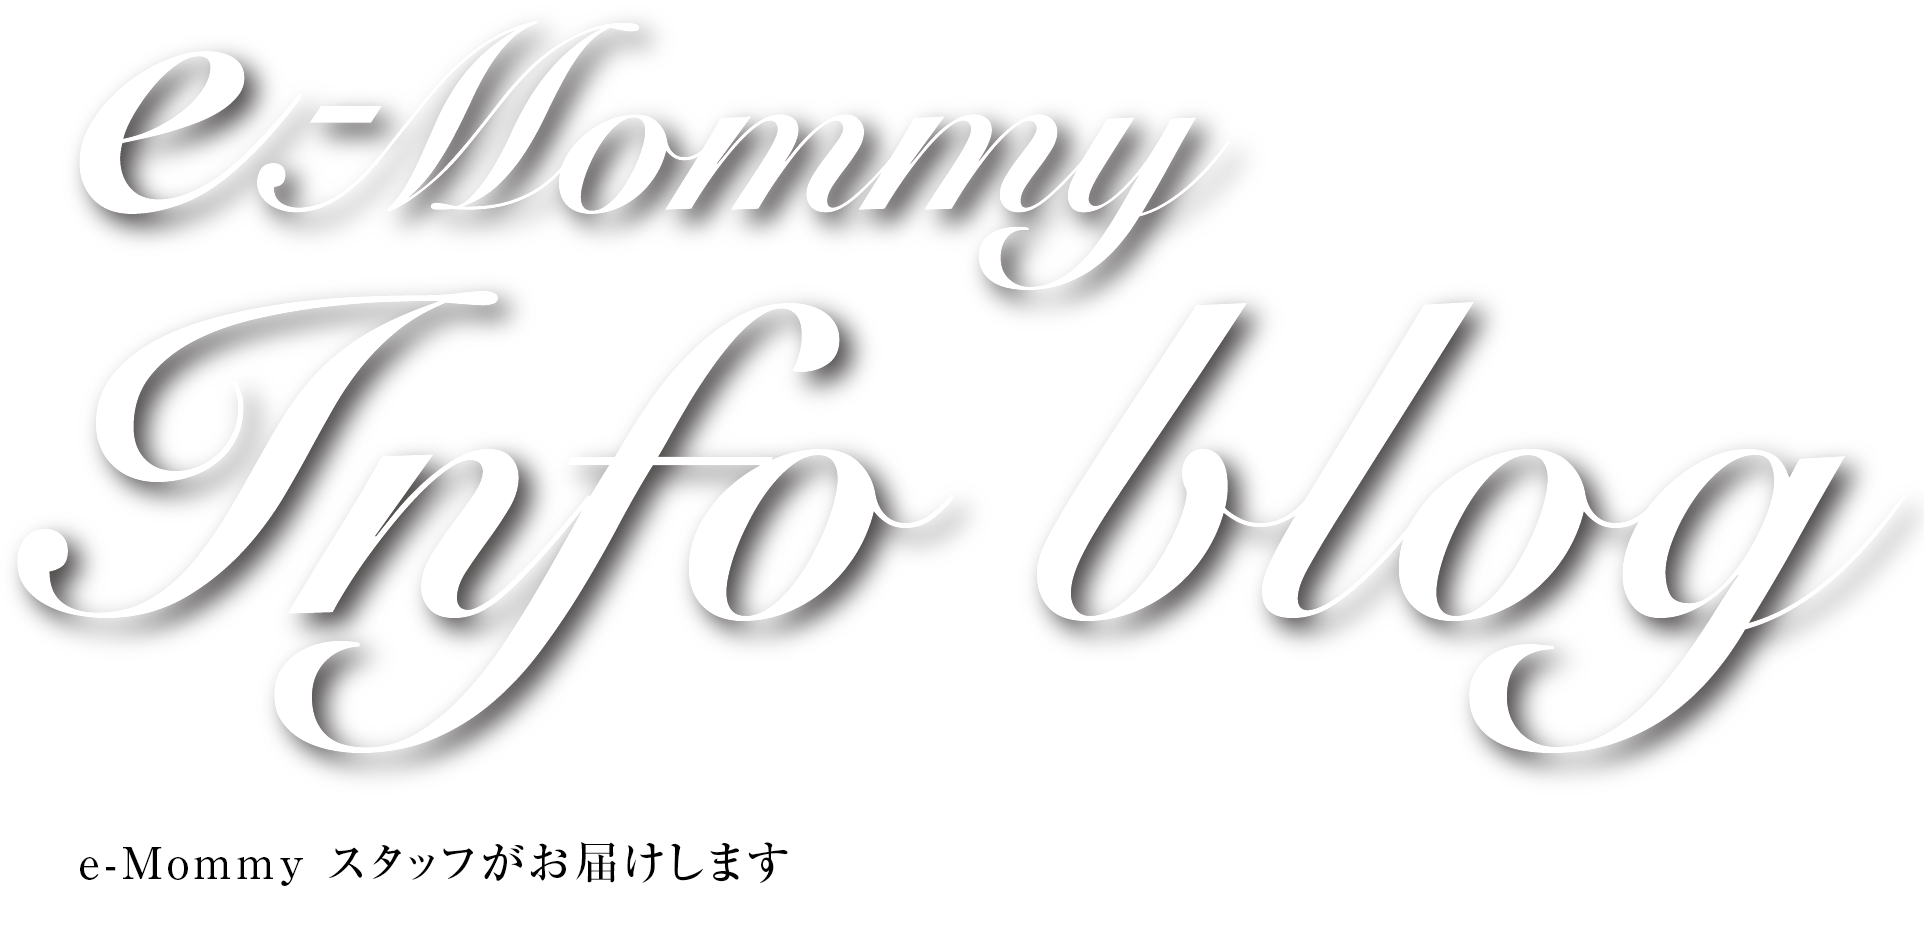 e-Mommy Info Blog